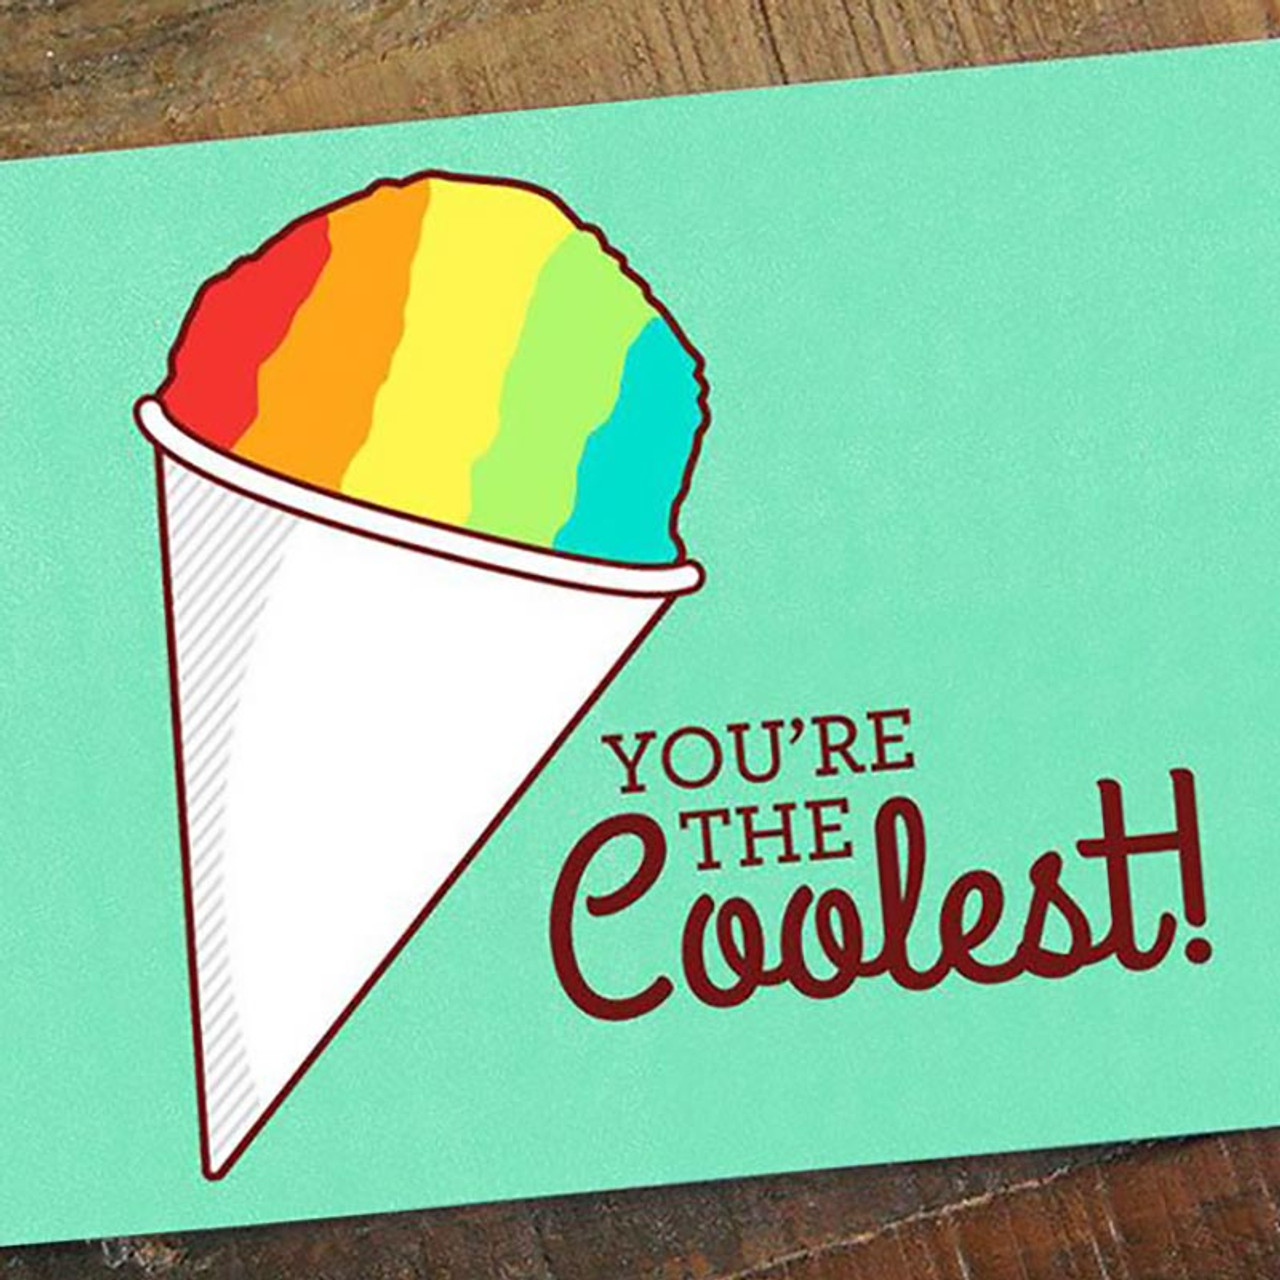 Snow-cone -  You're the Coolest Greeting Card